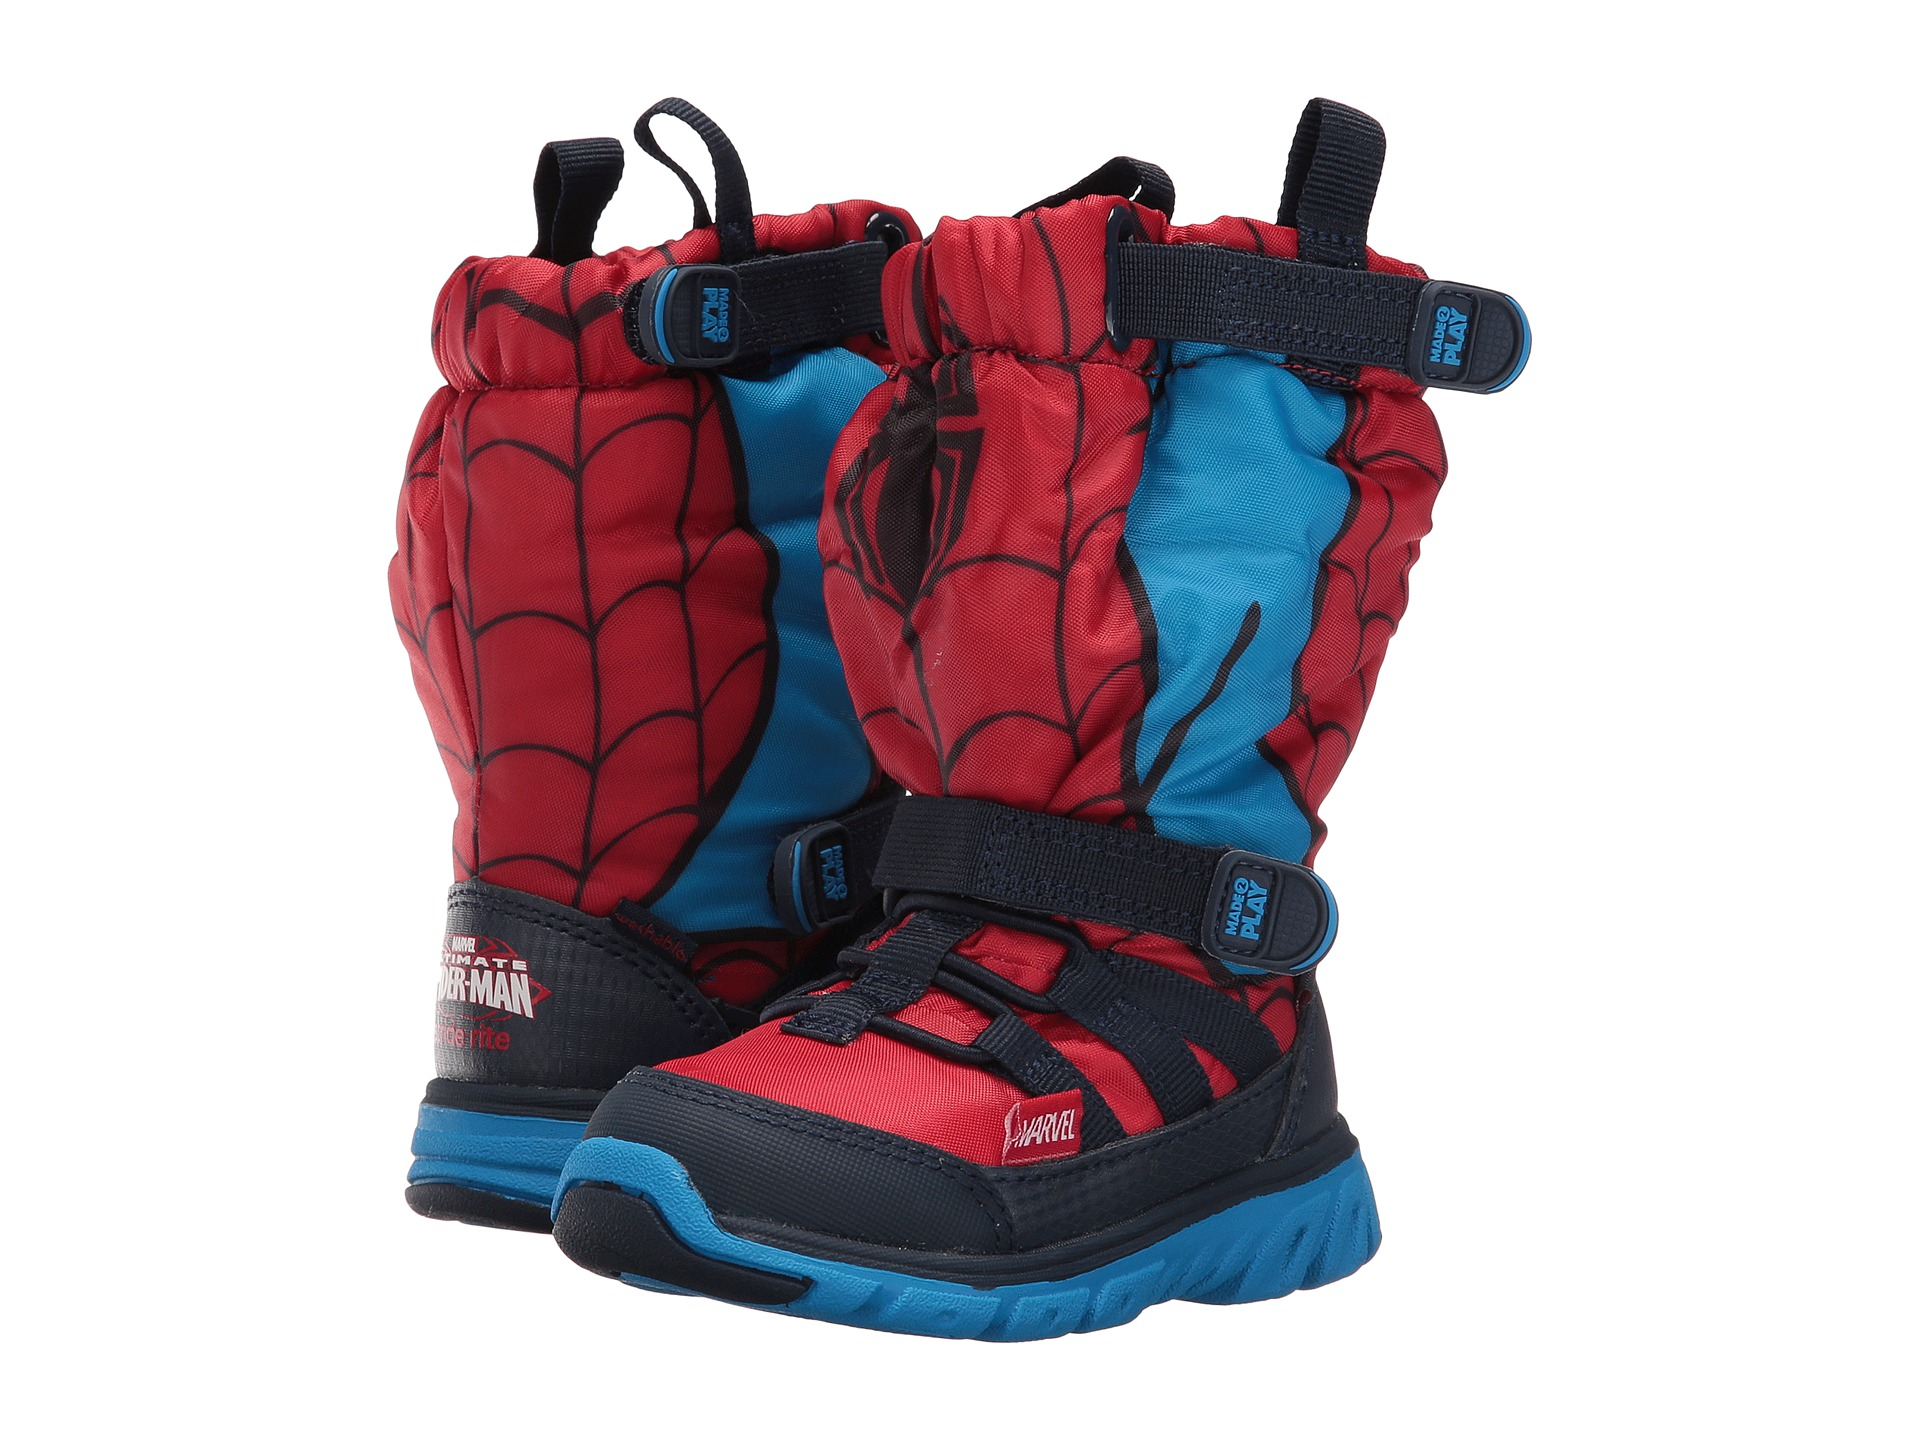 Stride Rite Baby Snow Boots | Division of Global Affairs